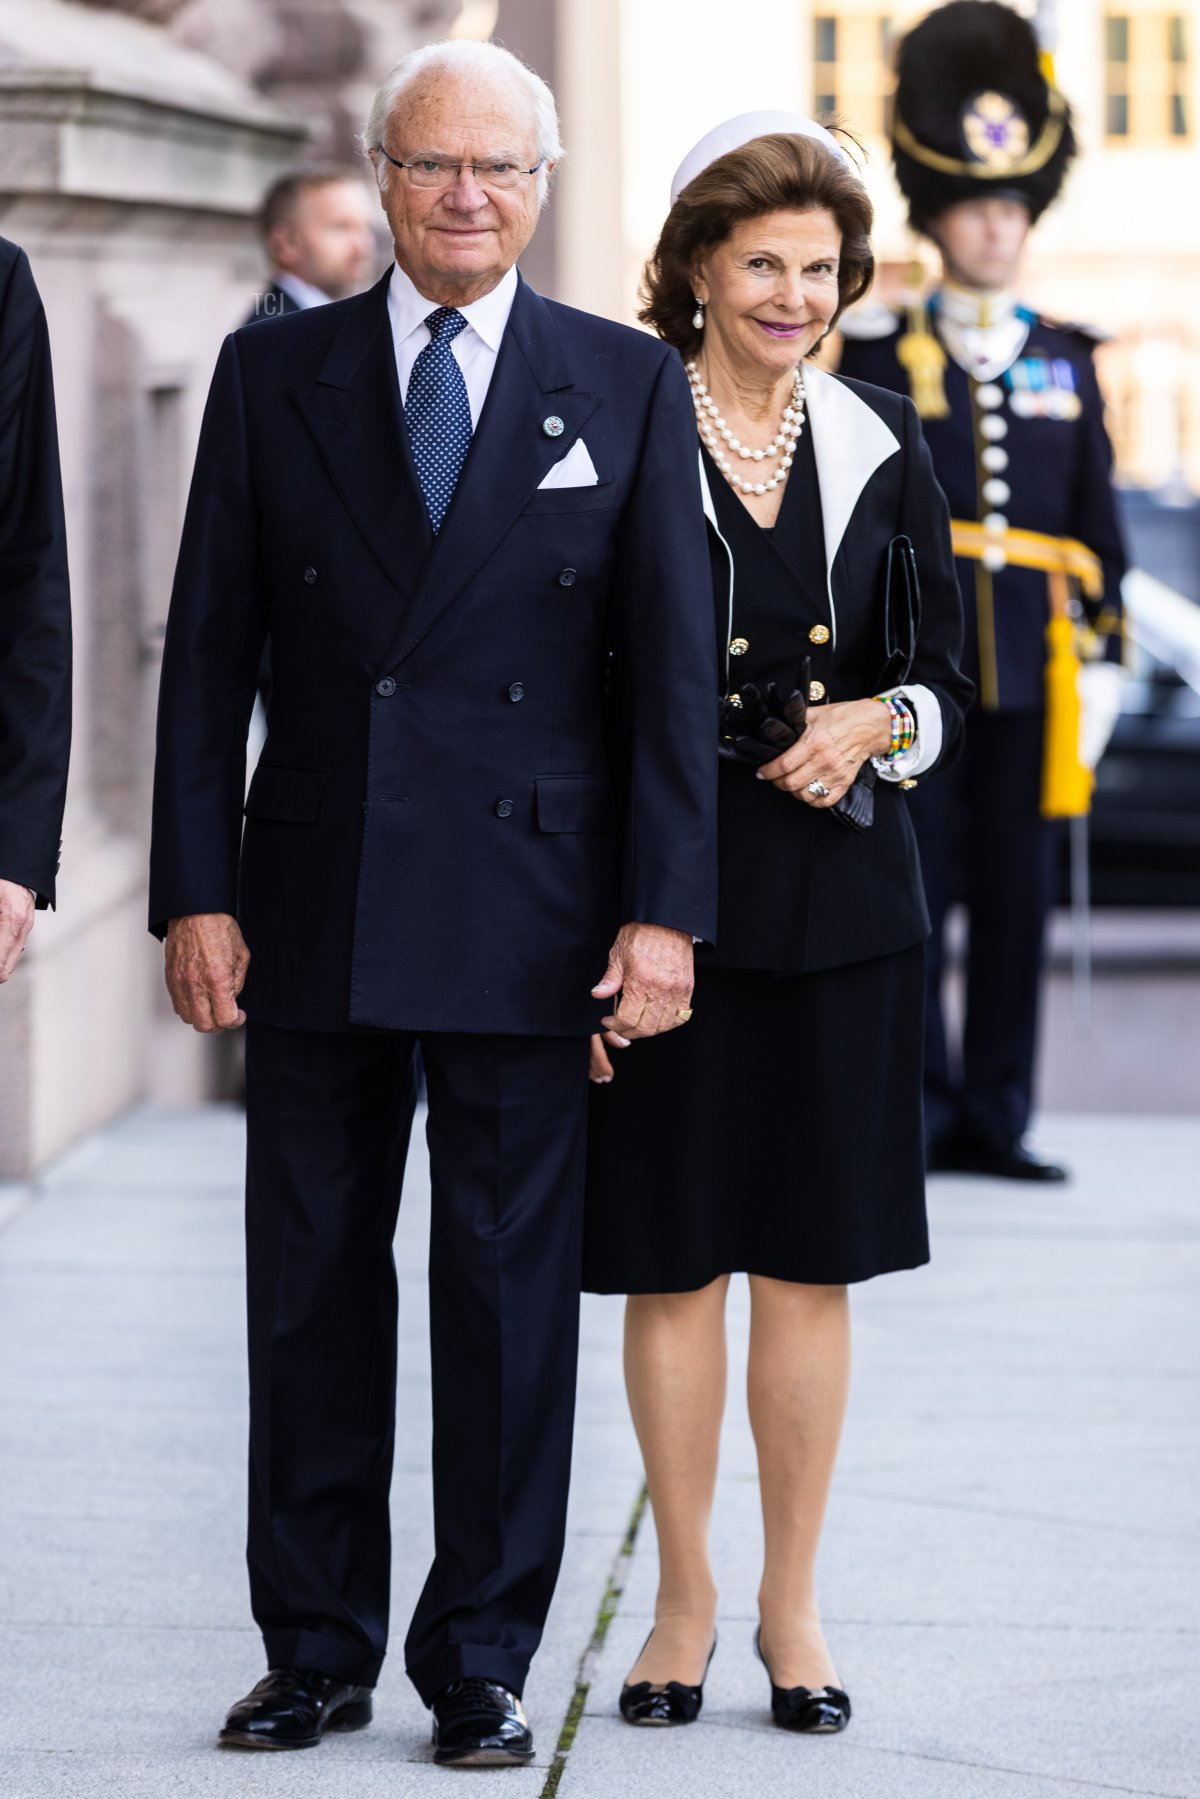 King Carl XVI Gustaf of Sweden and Queen Silvia of Sweden attend a ceremony in connection with the opening of the Swedish Parliament for the 2021/22 work year at the Swedish Parliament House on September 14, 2021 in Stockholm, Sweden